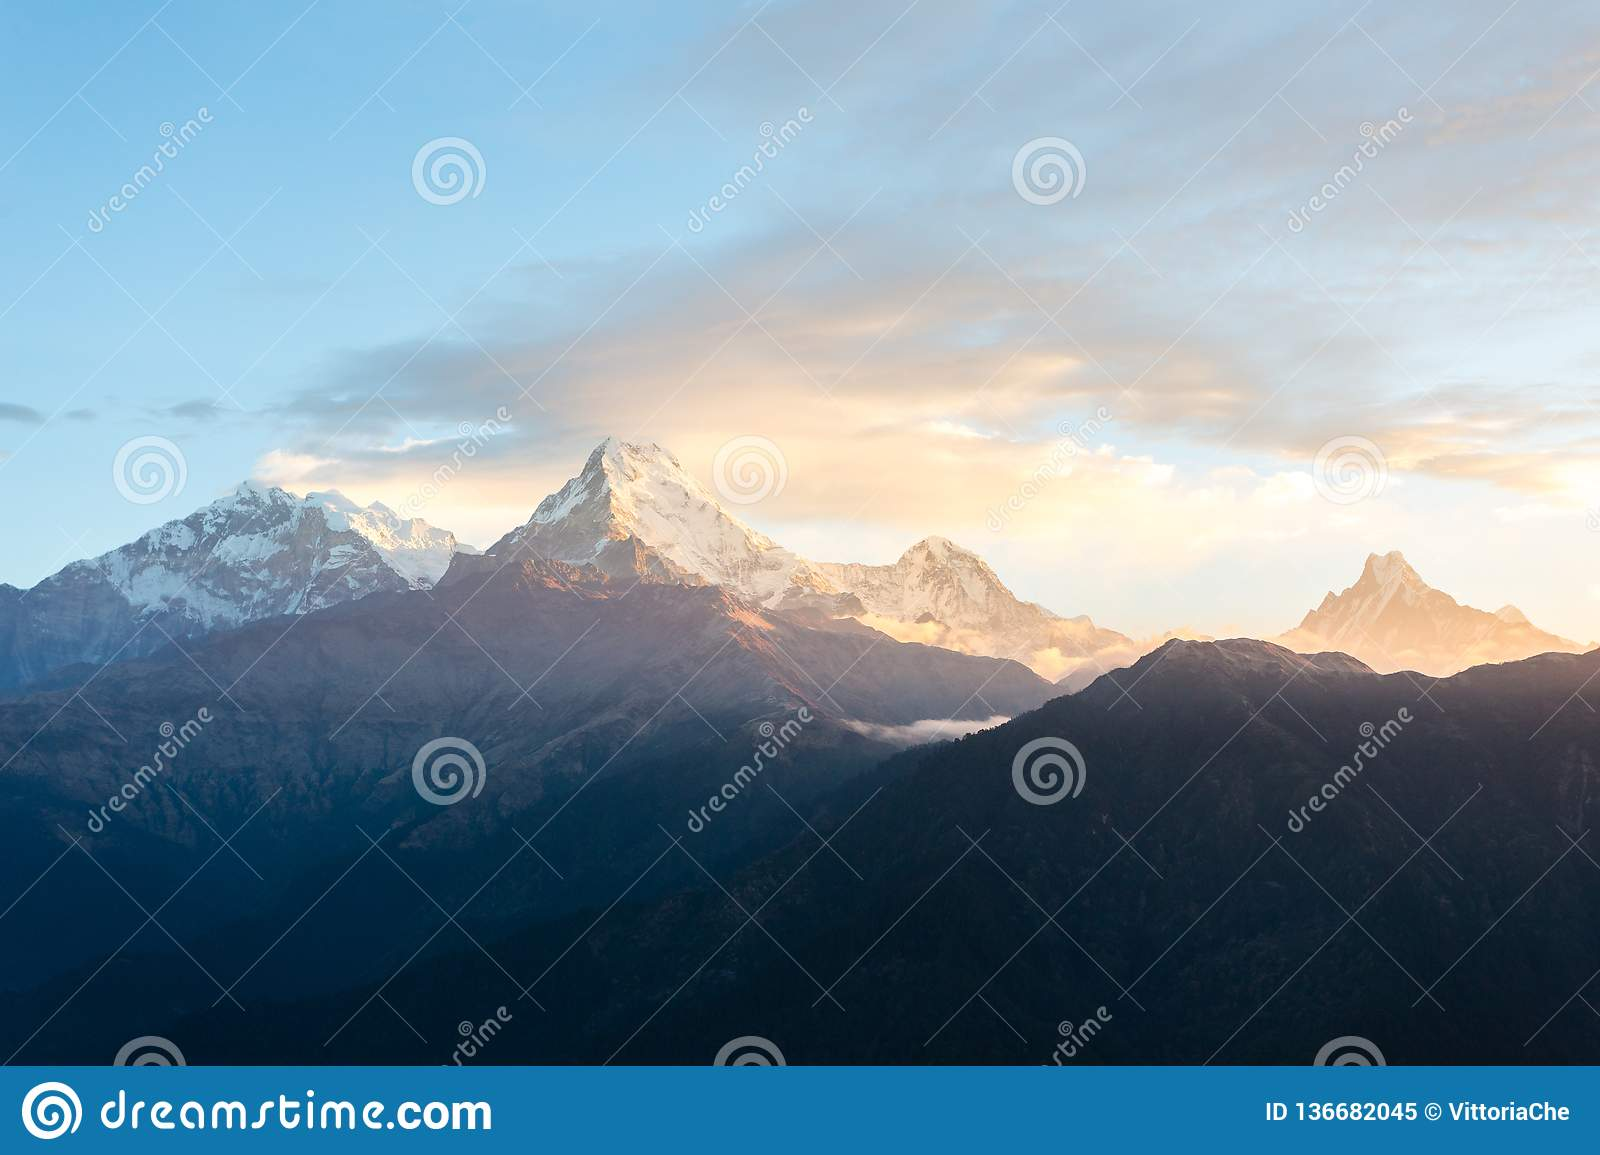 View of Annapurna mountain range from Poon Hill 3210 m on sunrise. It`s the famous view point in Gorepani village in Annapurna